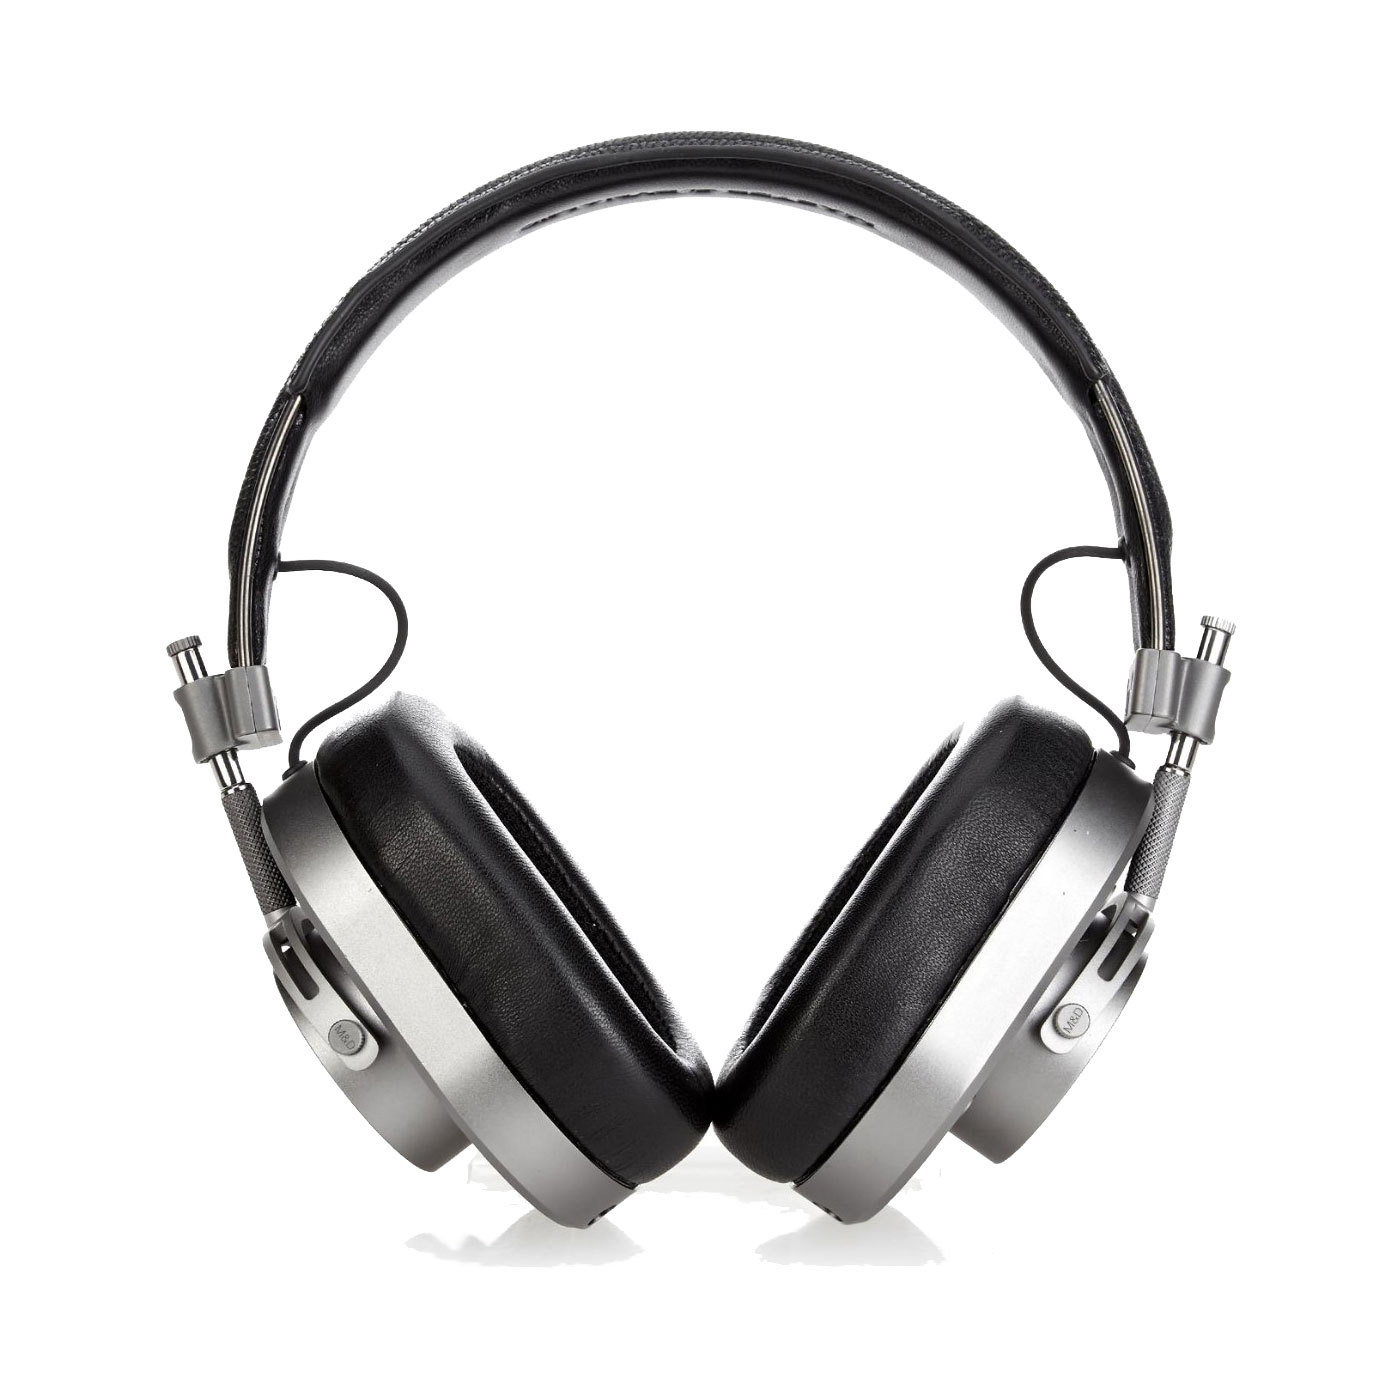 MASTER & DYNAMIC • Headphones • 400 USD